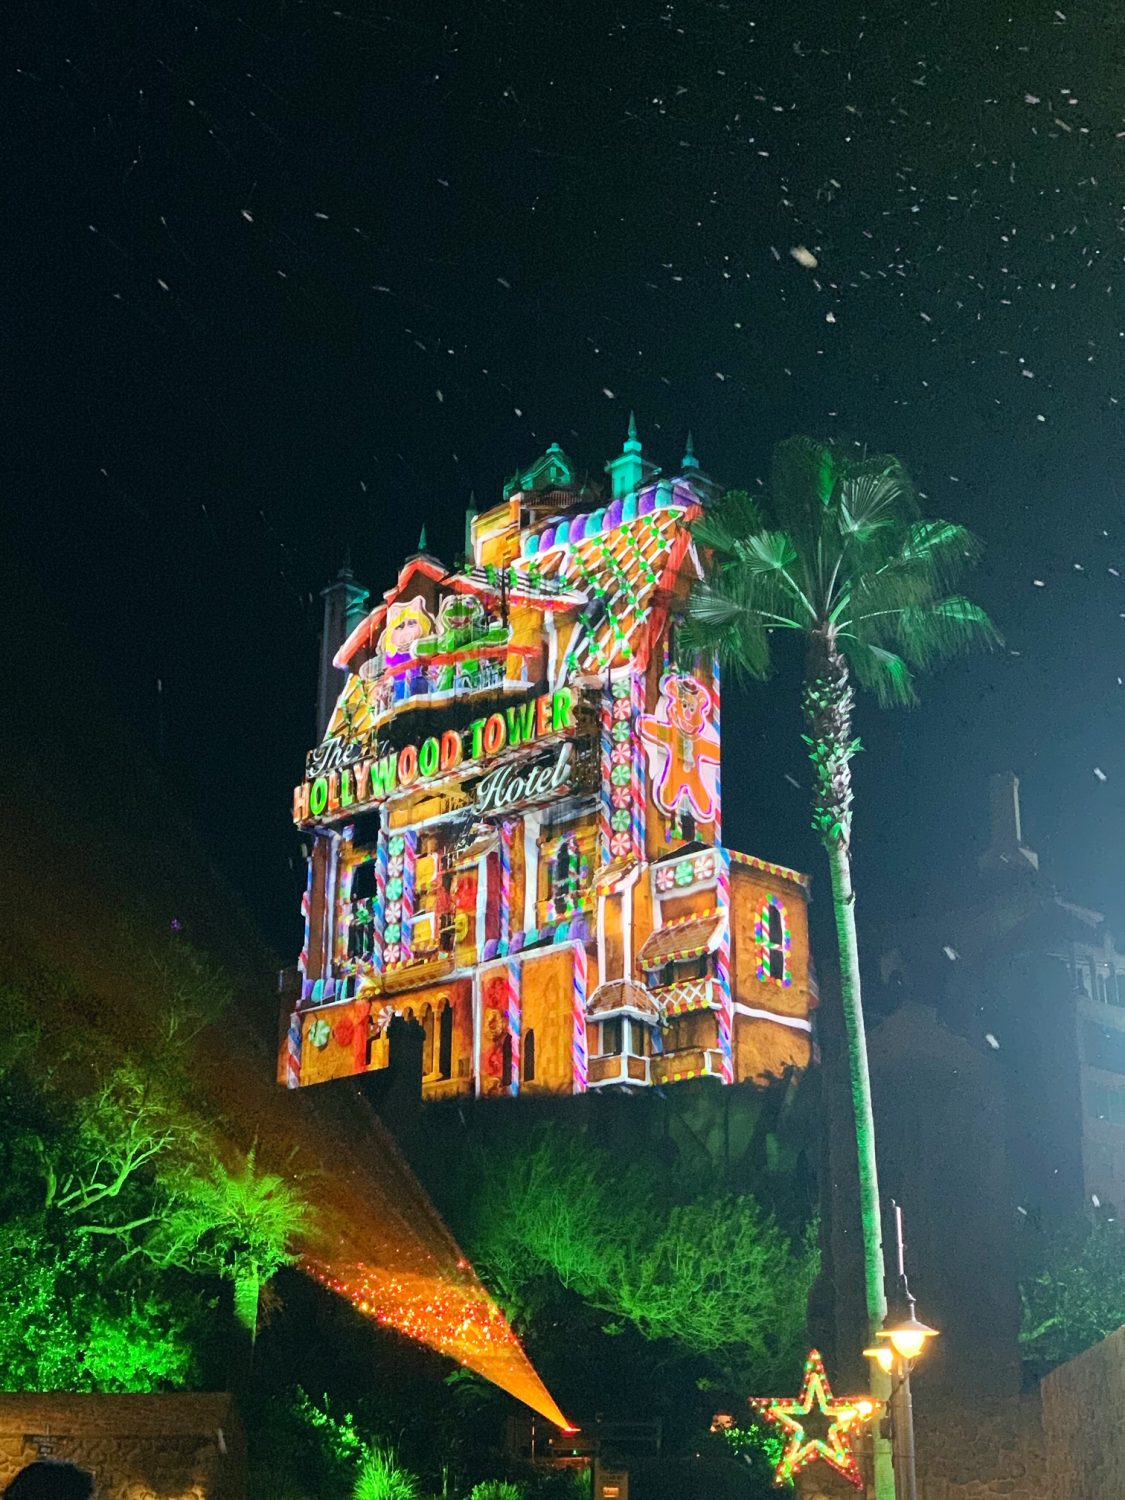 Hollywood Studios During Christmastime Tower of Terror